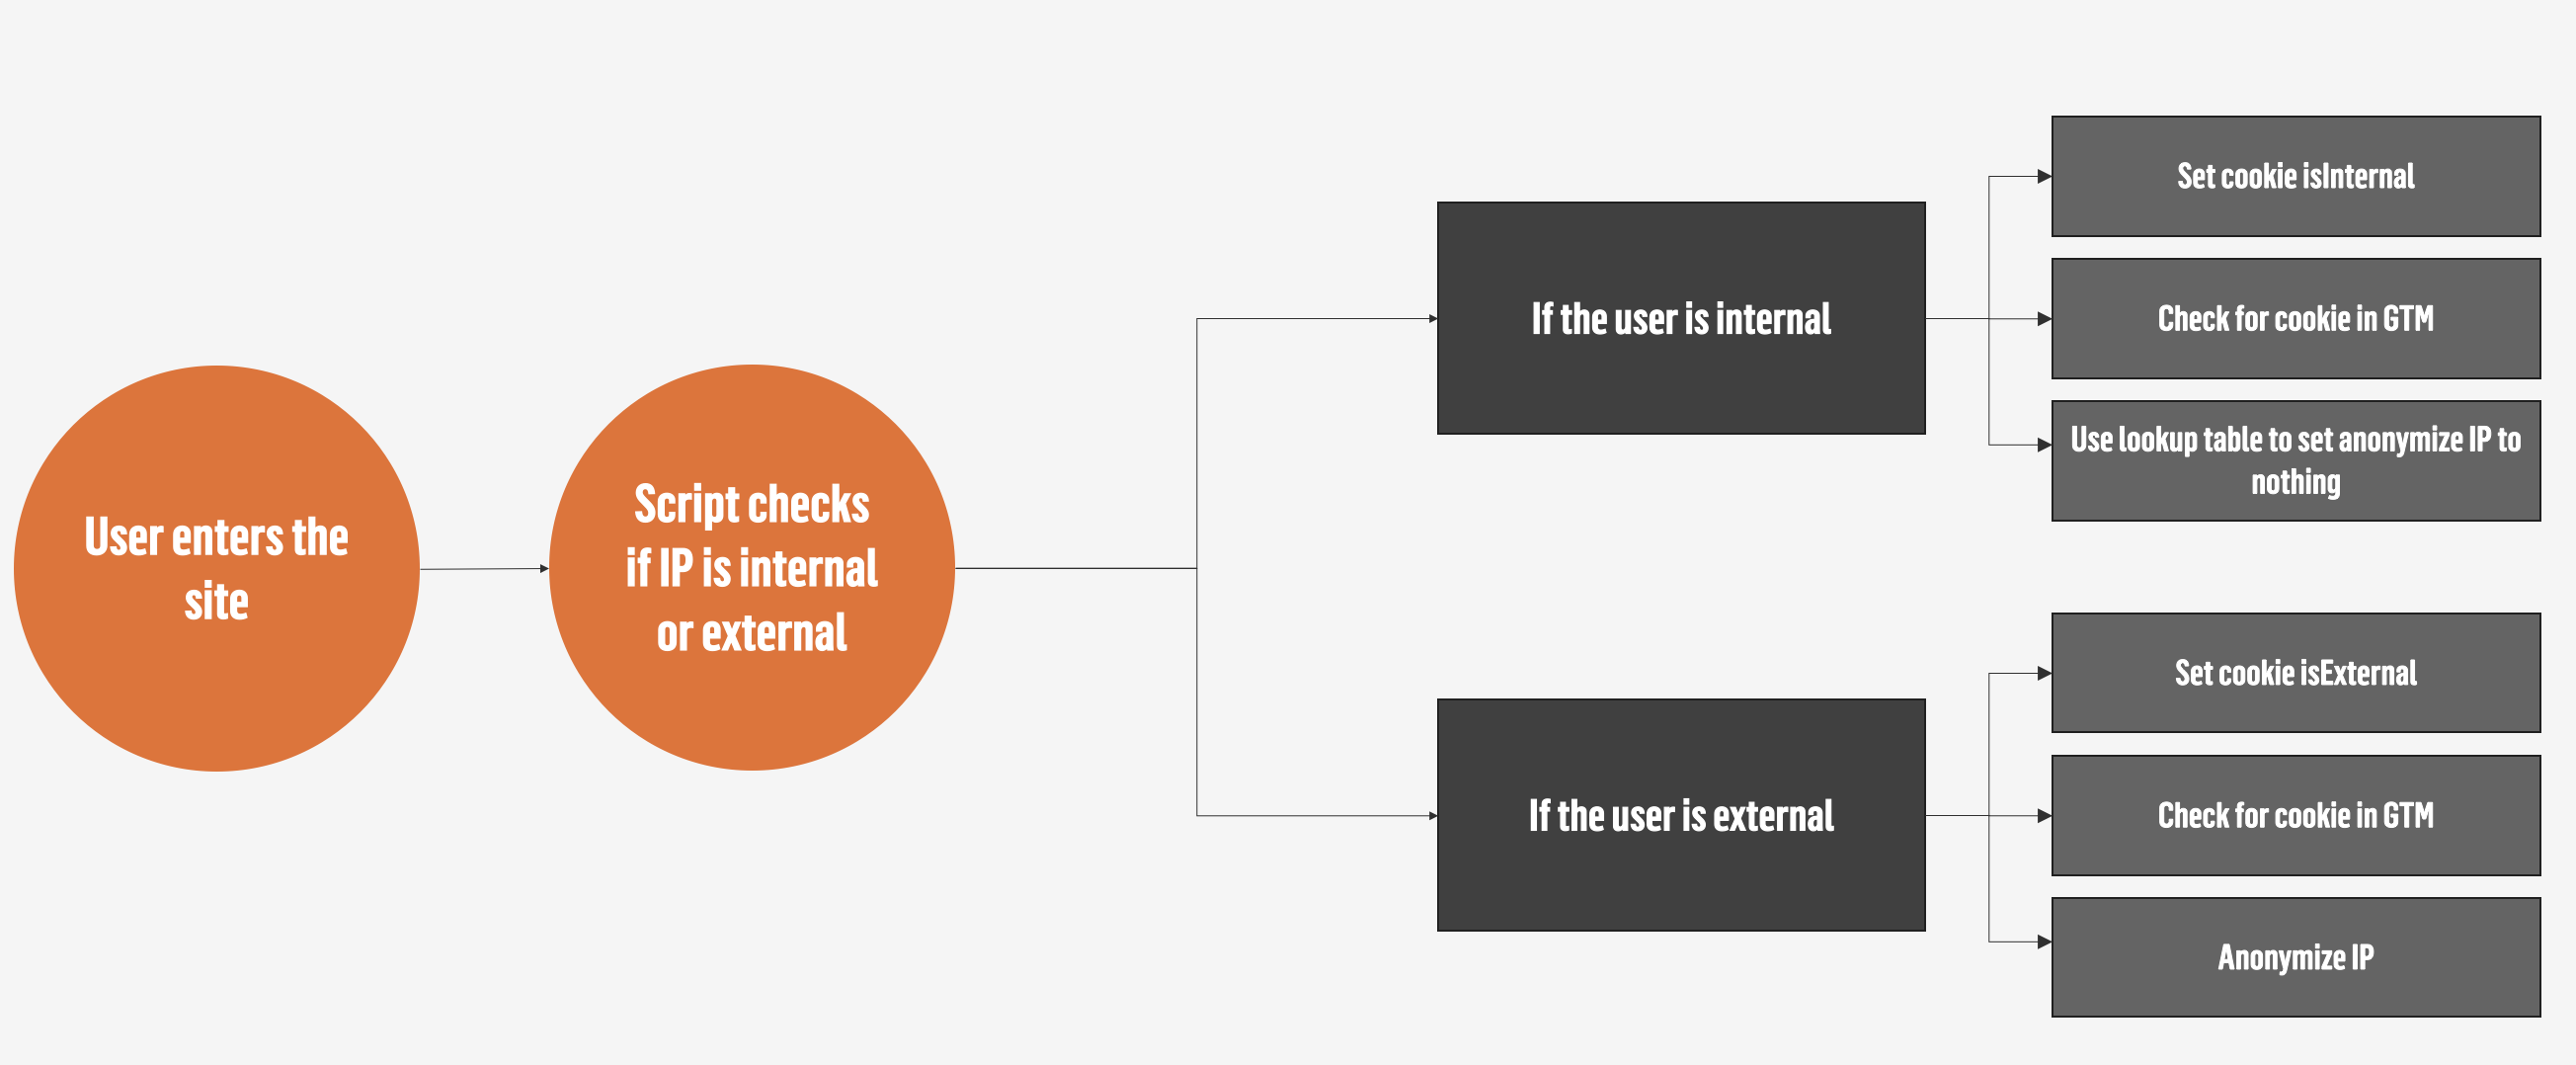 Anonymizing IP adresses while excluding internal referrers